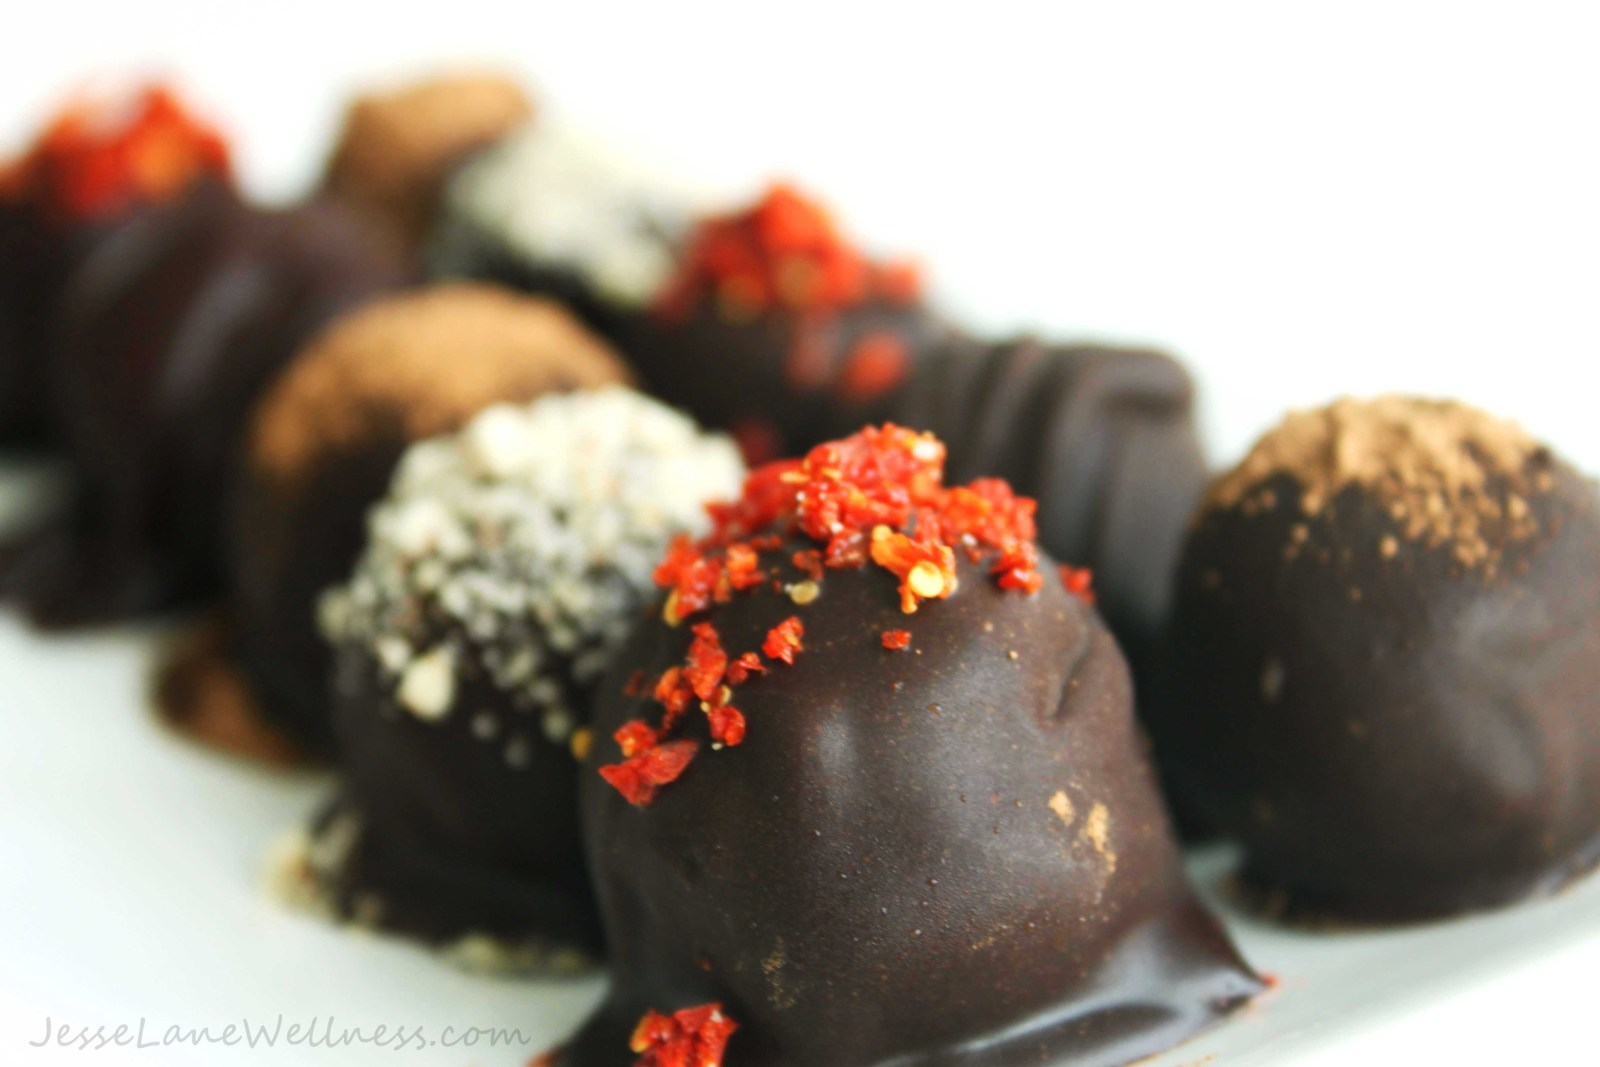 Vegan Chocolate Coated Hazelnut Truffles with various toppings